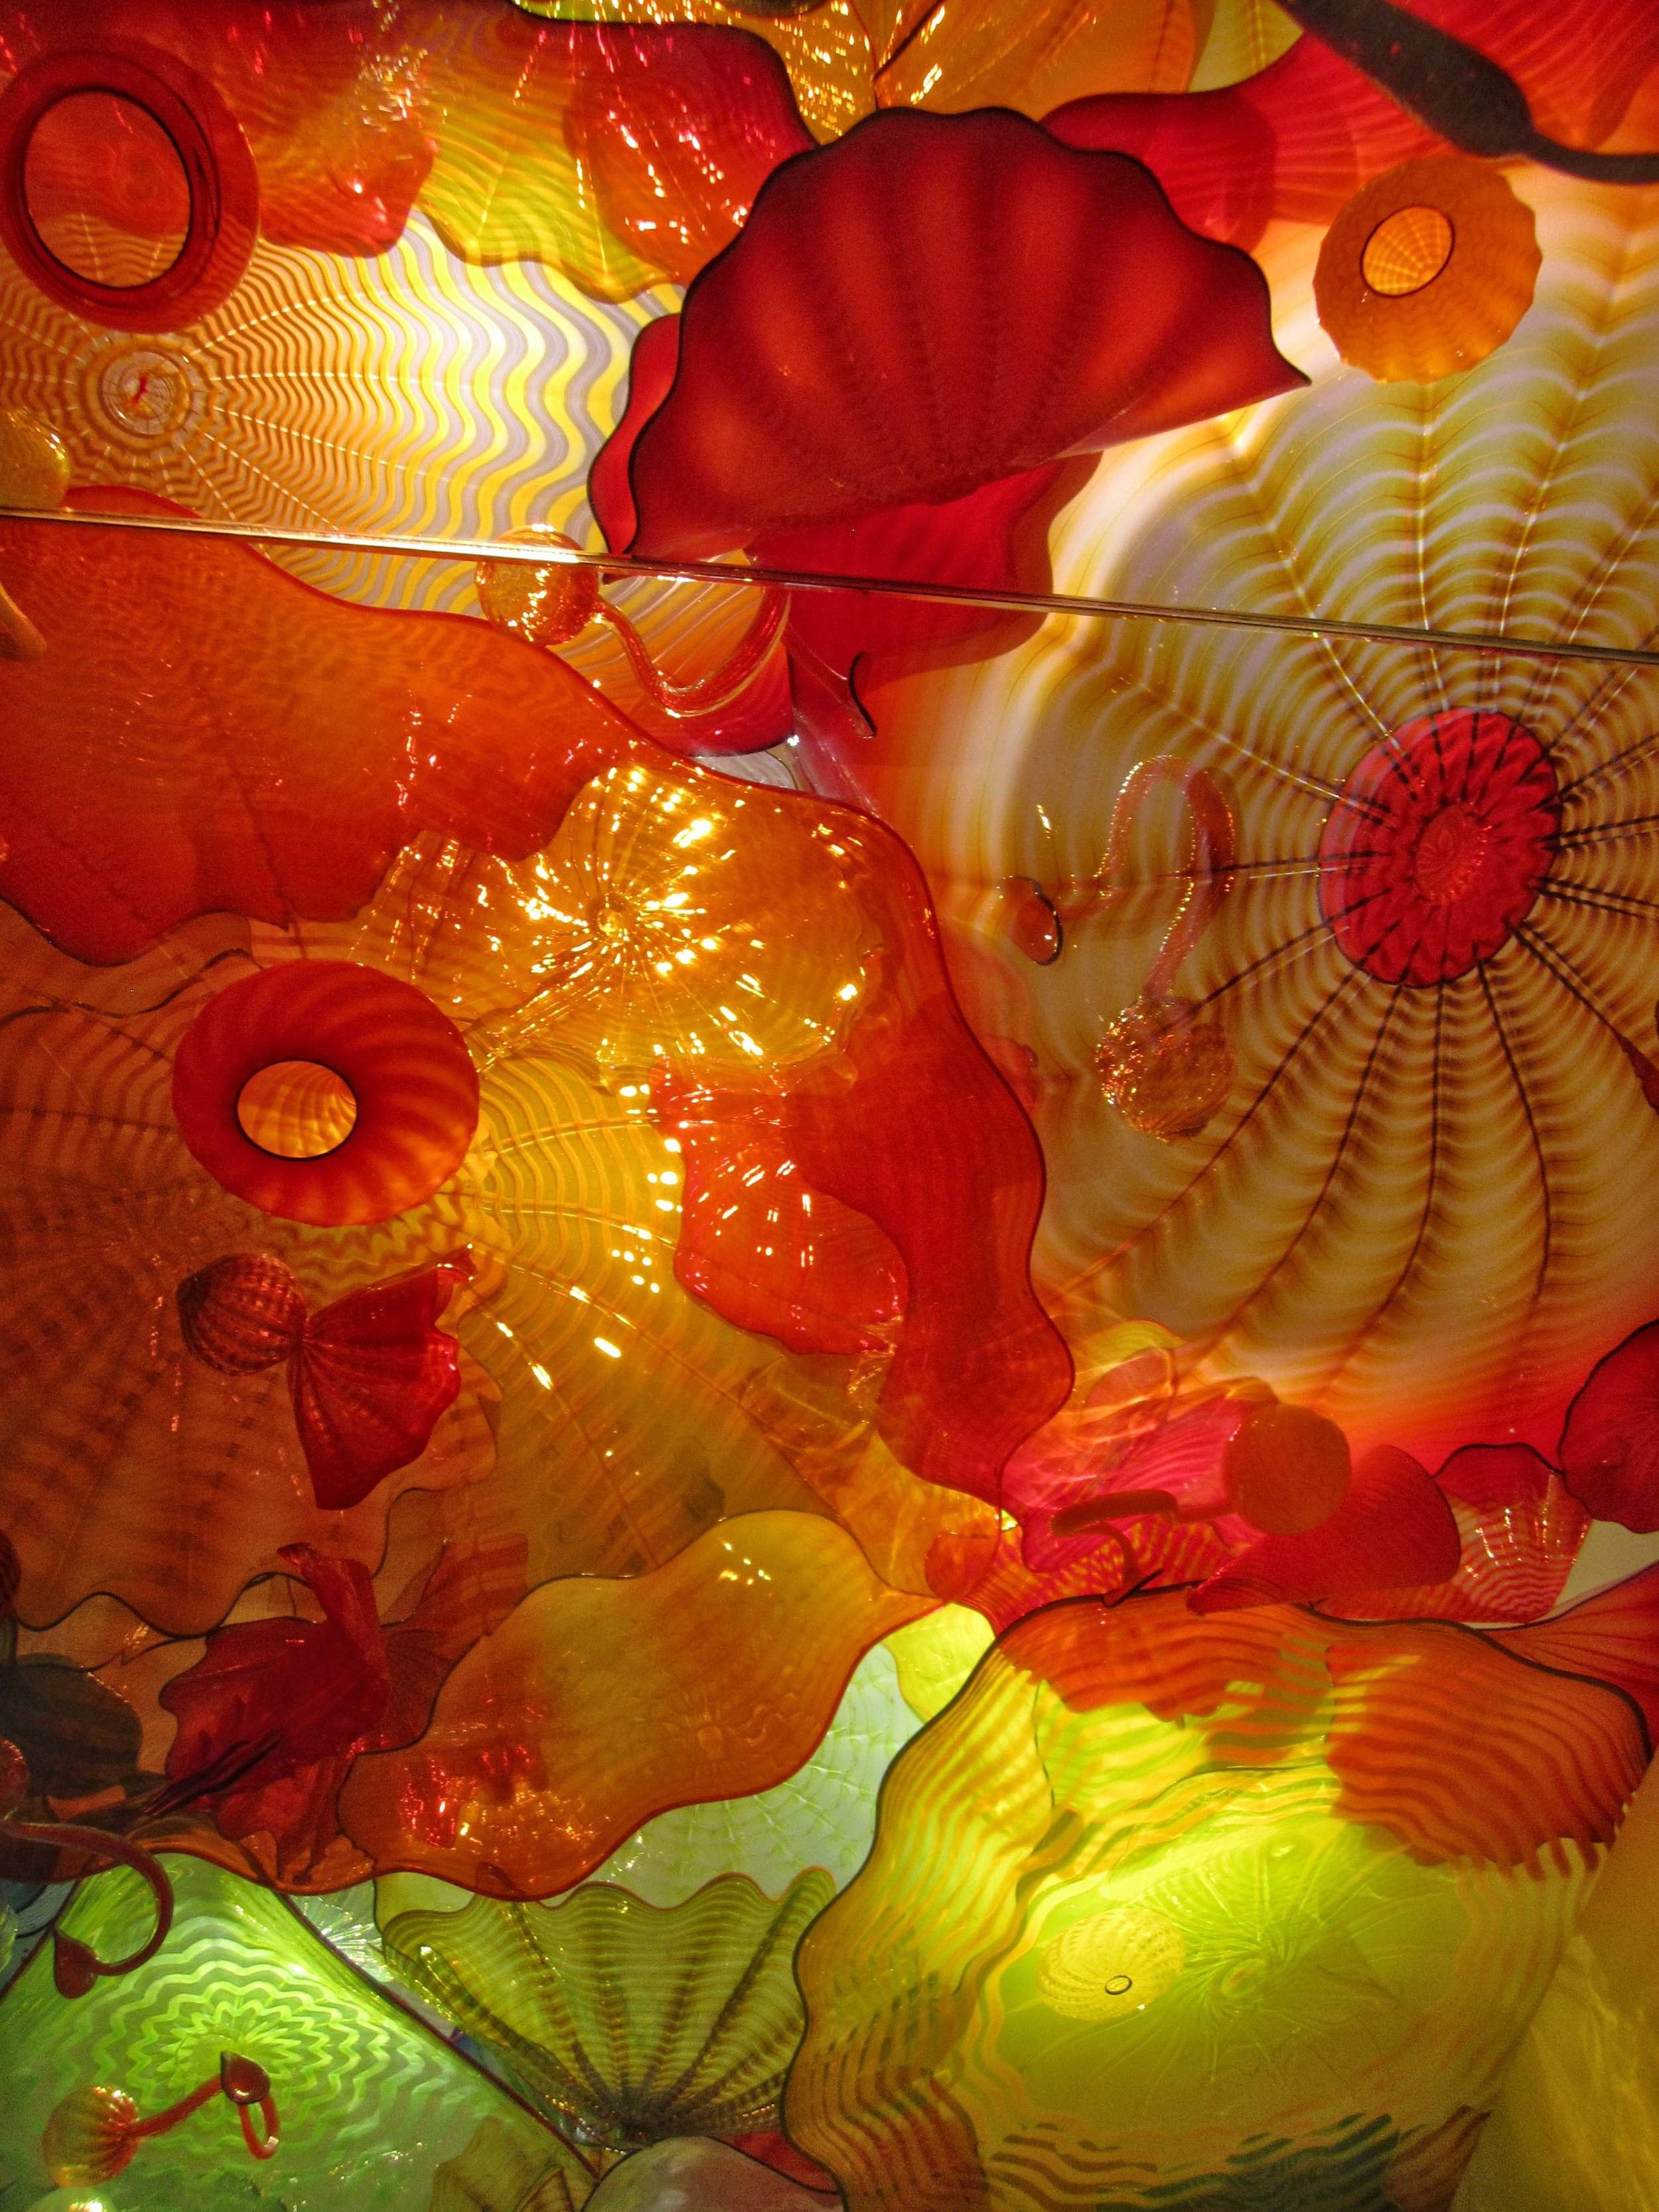 Detail of Chihuly's  Persian Ceiling  installation